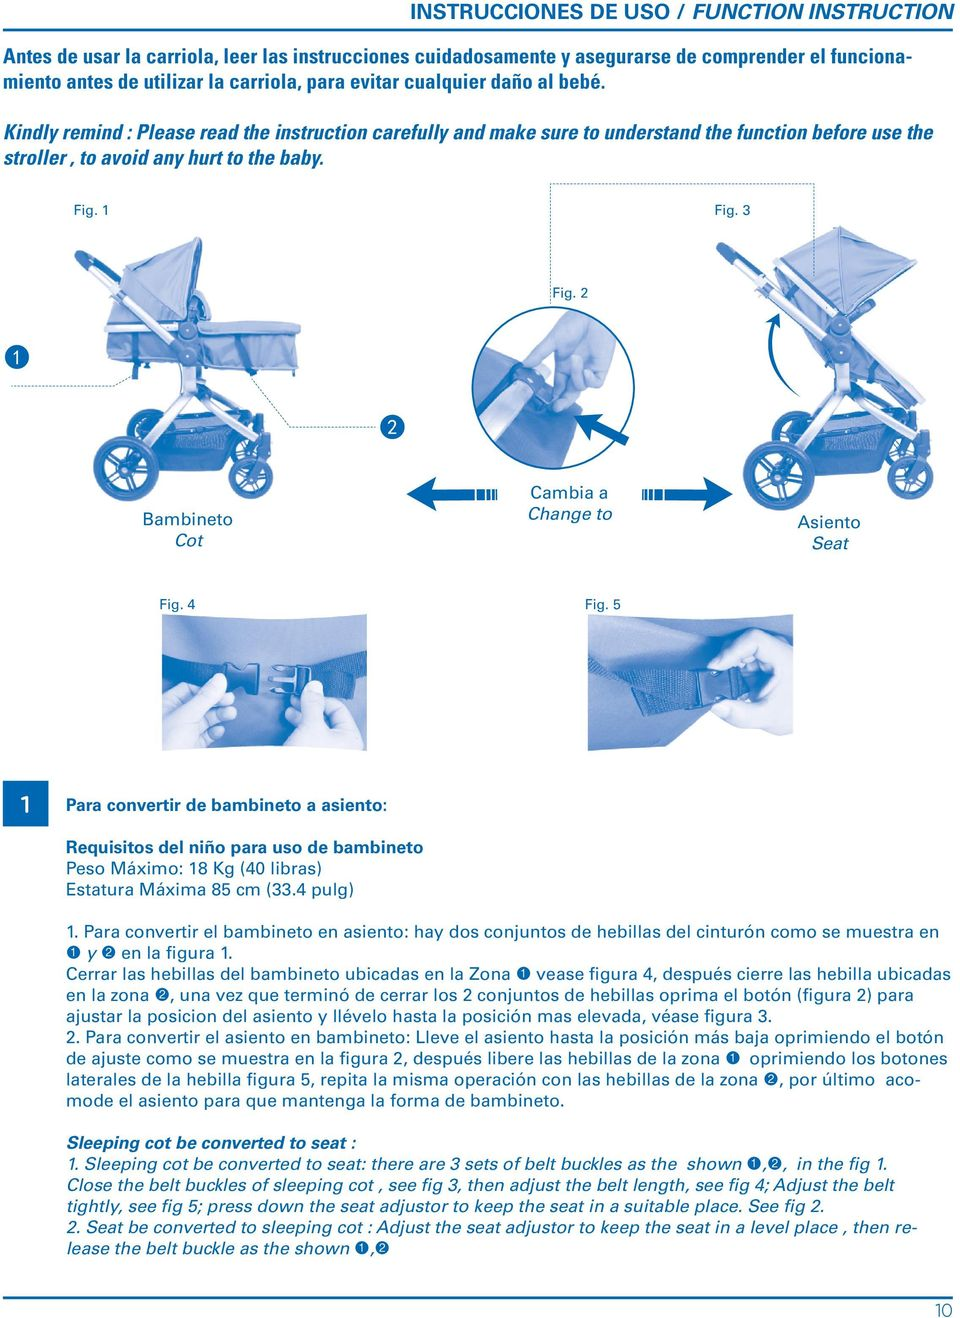 2 1 2 Bambineto Cot Cambia a Change to Asiento Seat Fig. 4 Fig.